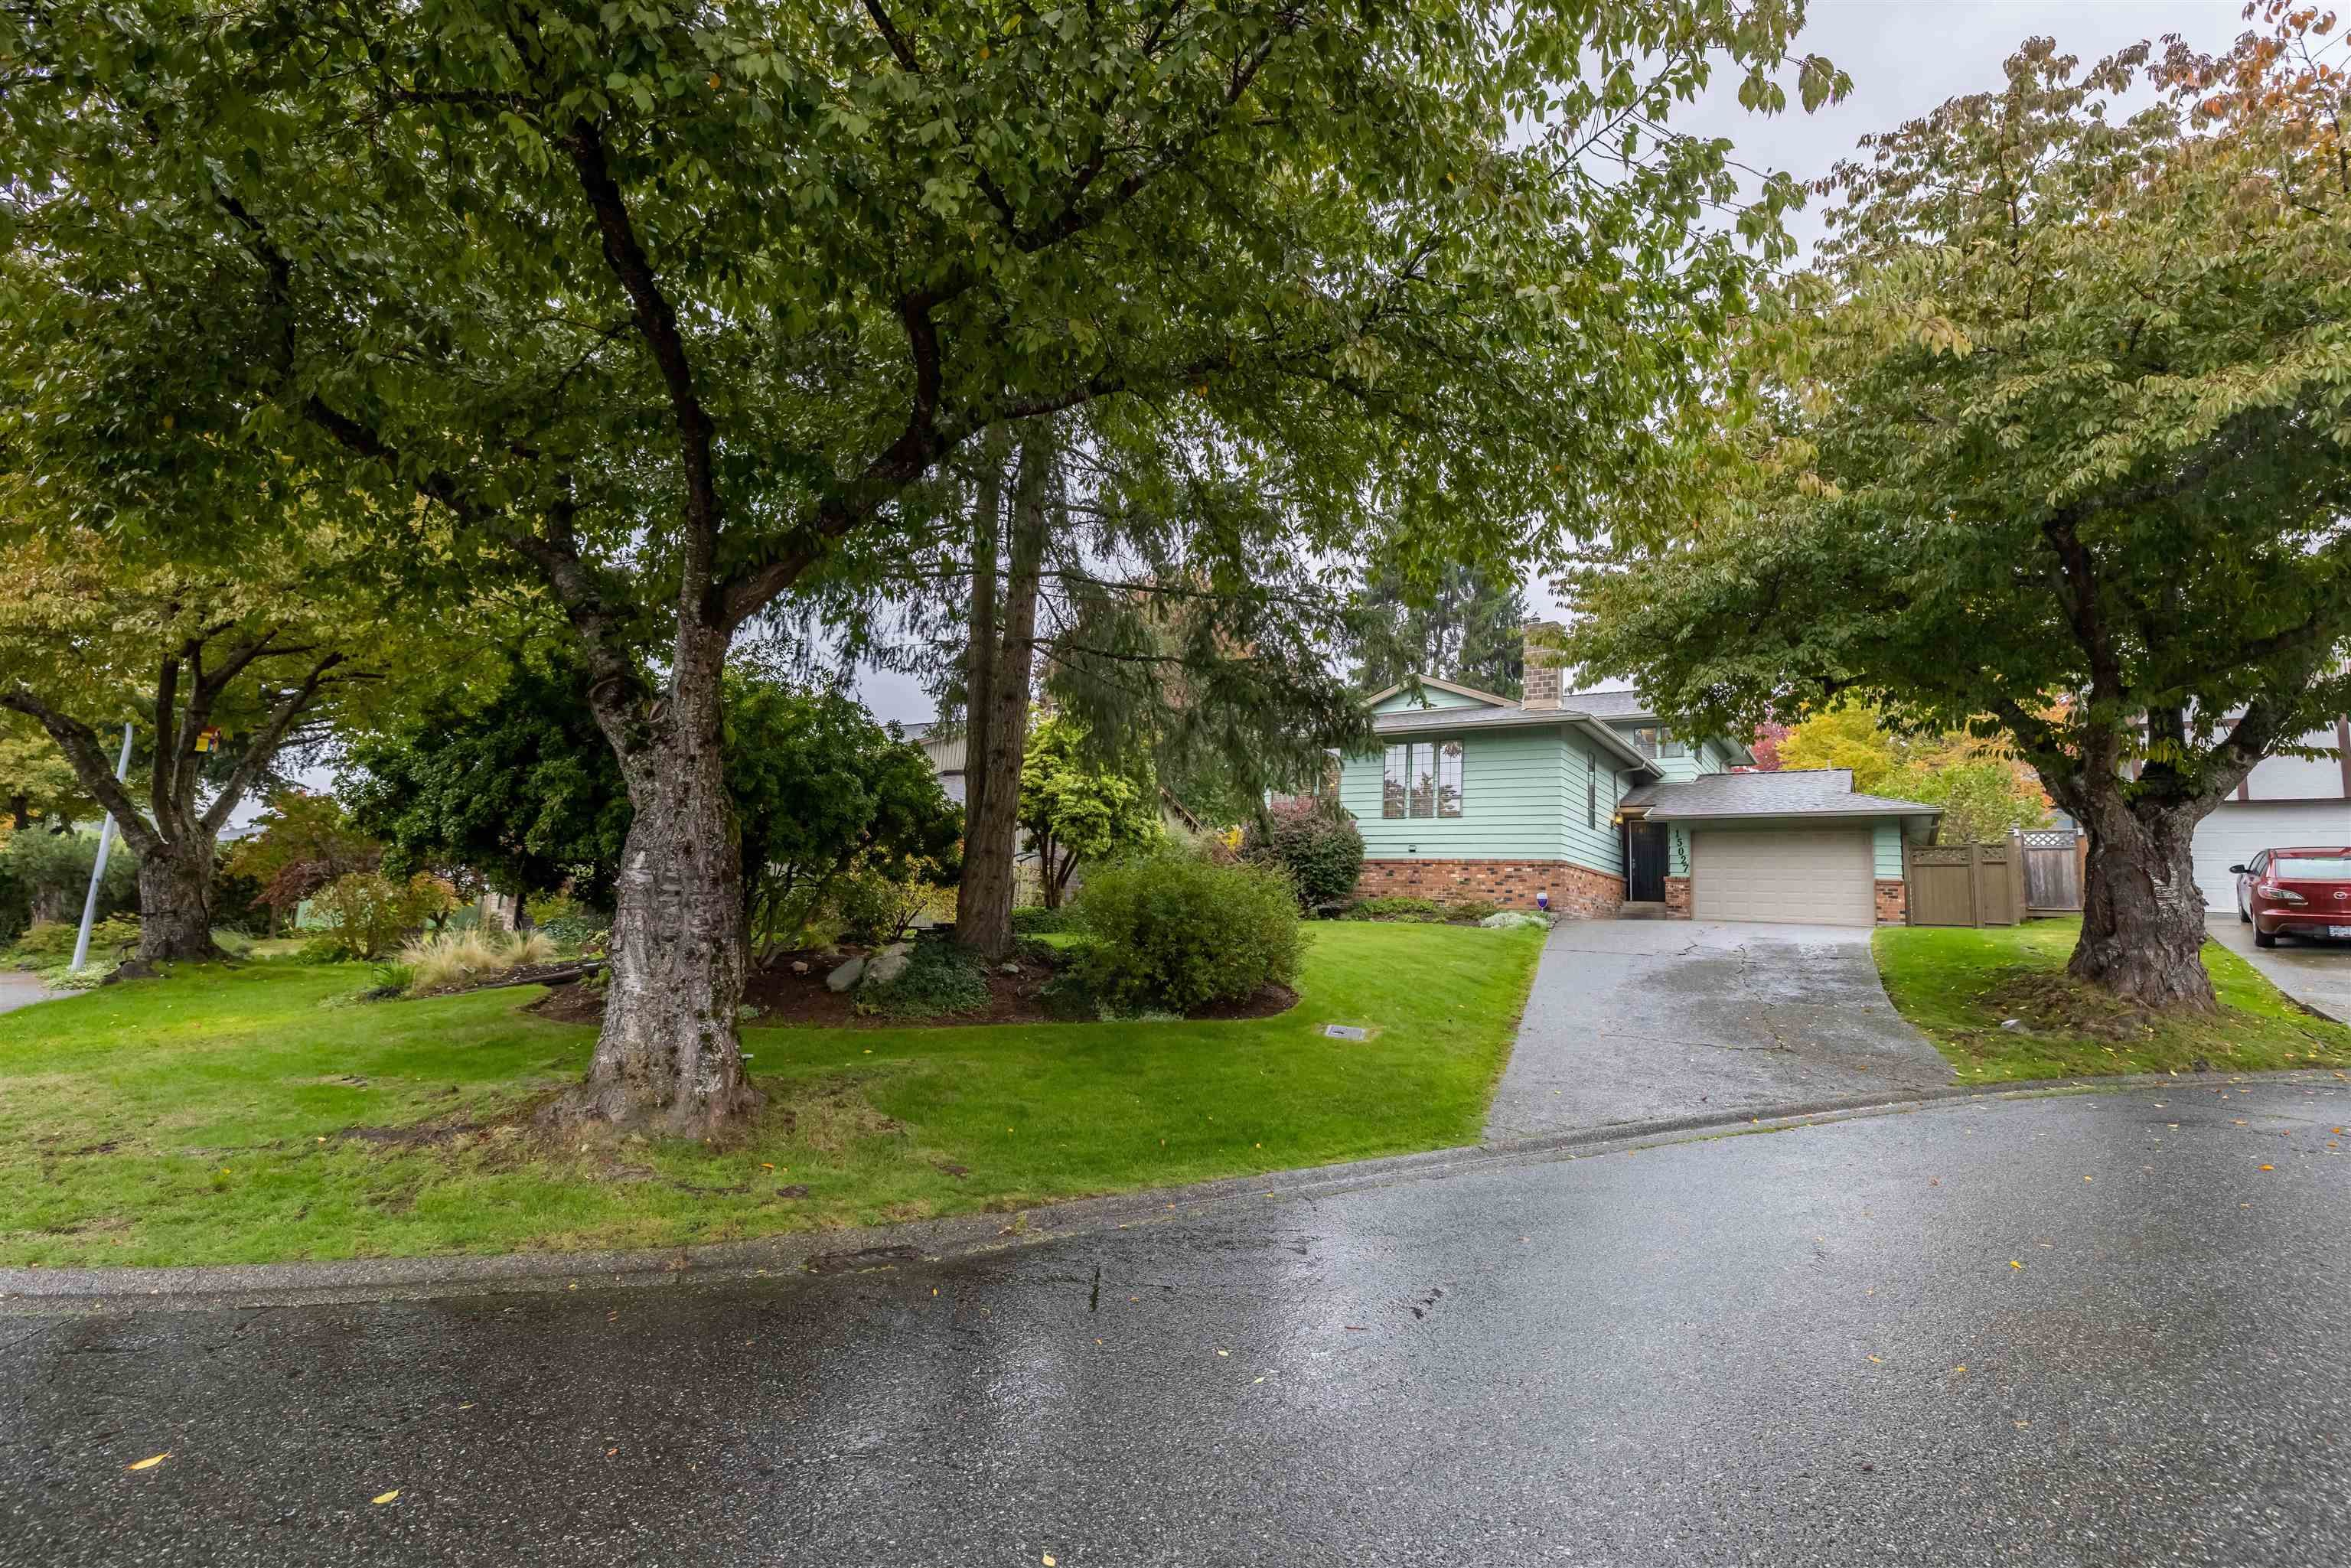 Main Photo: 15027 SPENSER Drive in Surrey: Bear Creek Green Timbers House for sale : MLS®# R2625533